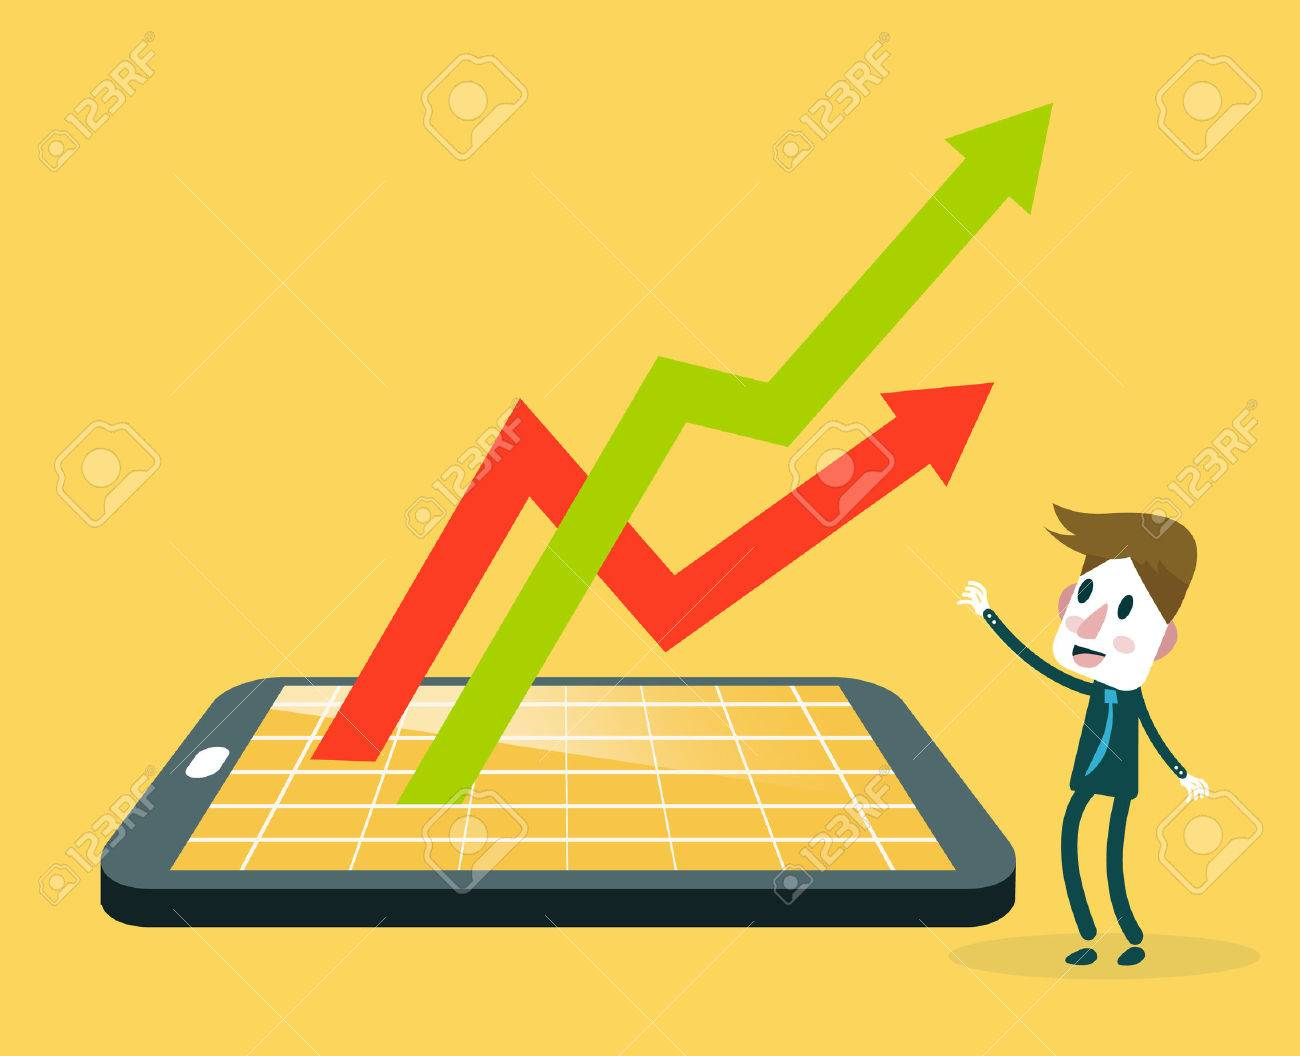 Businessman watching smartphone with stock market application and growth graph. v - 44351478